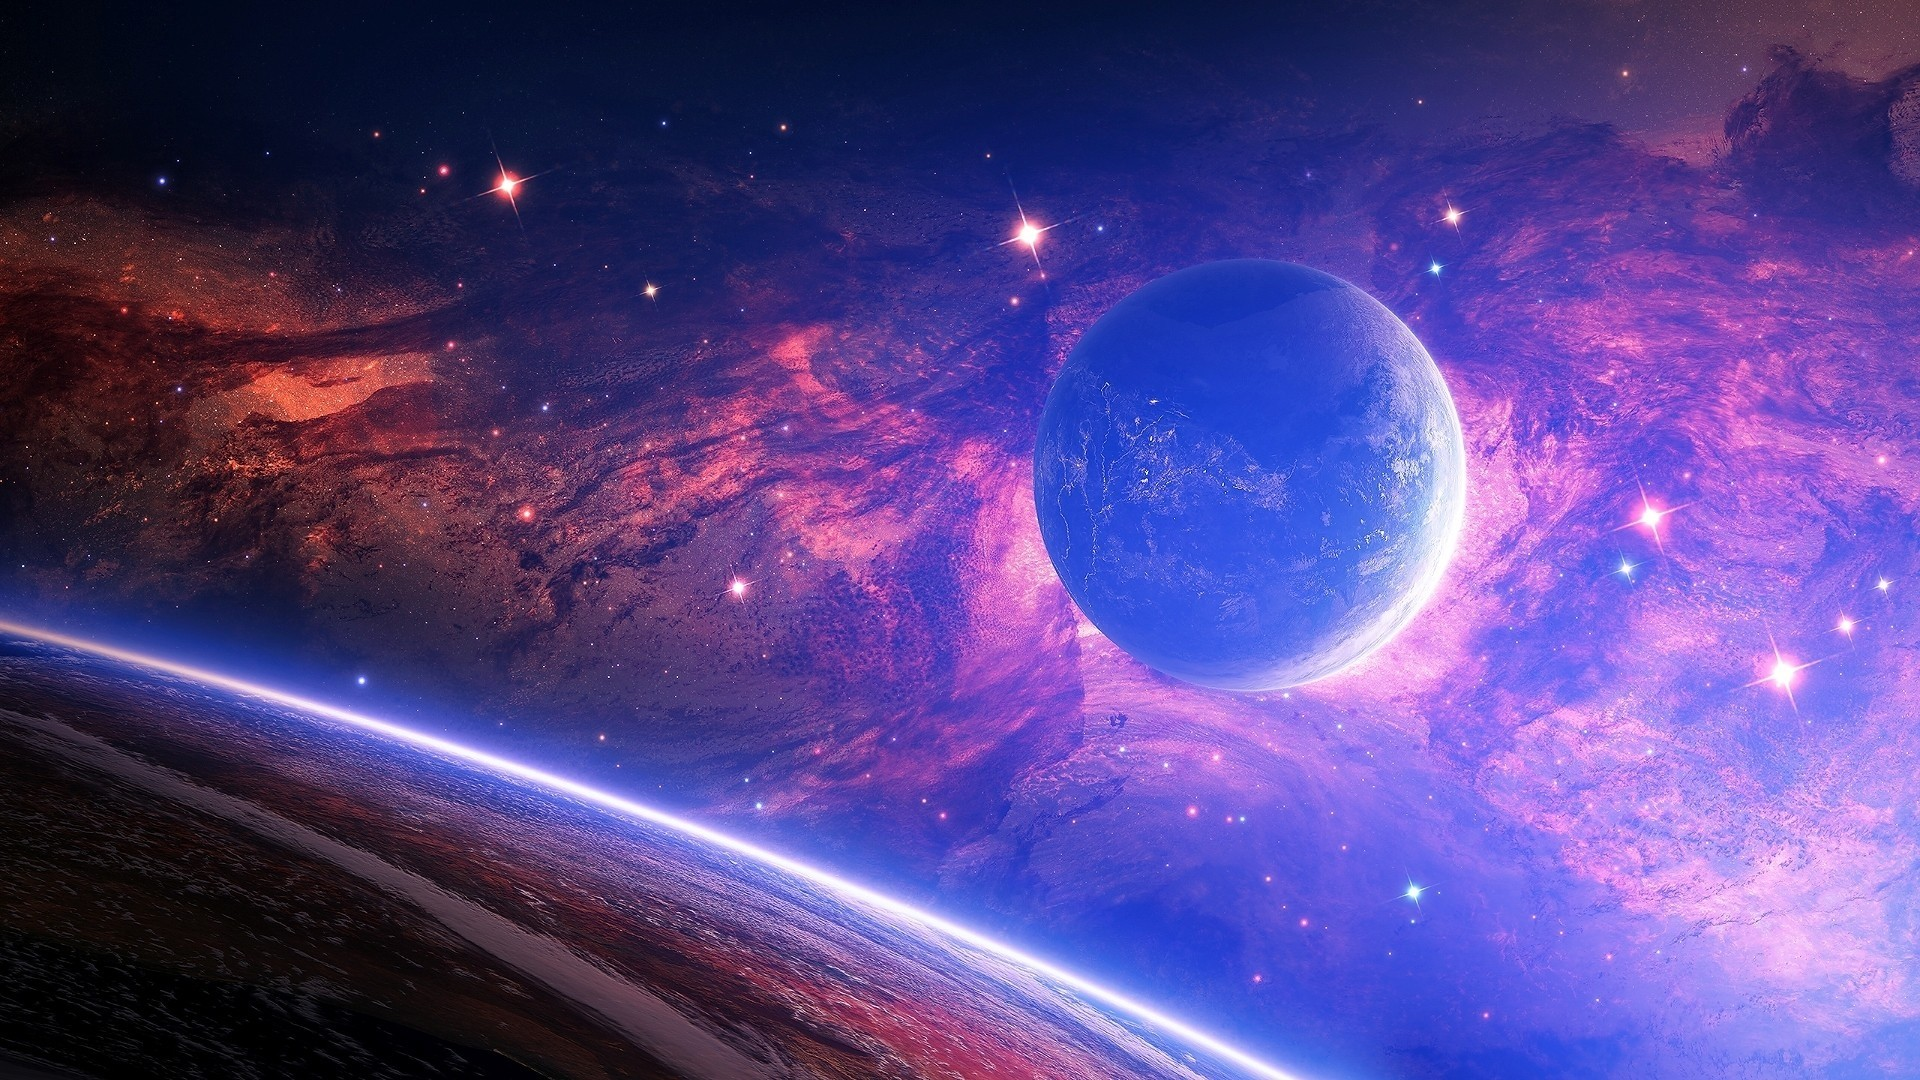 1920x1080 Space Wallpapers  85  images  1920x1080 Preview wallpaper planet  light  spots  space 1920x1080